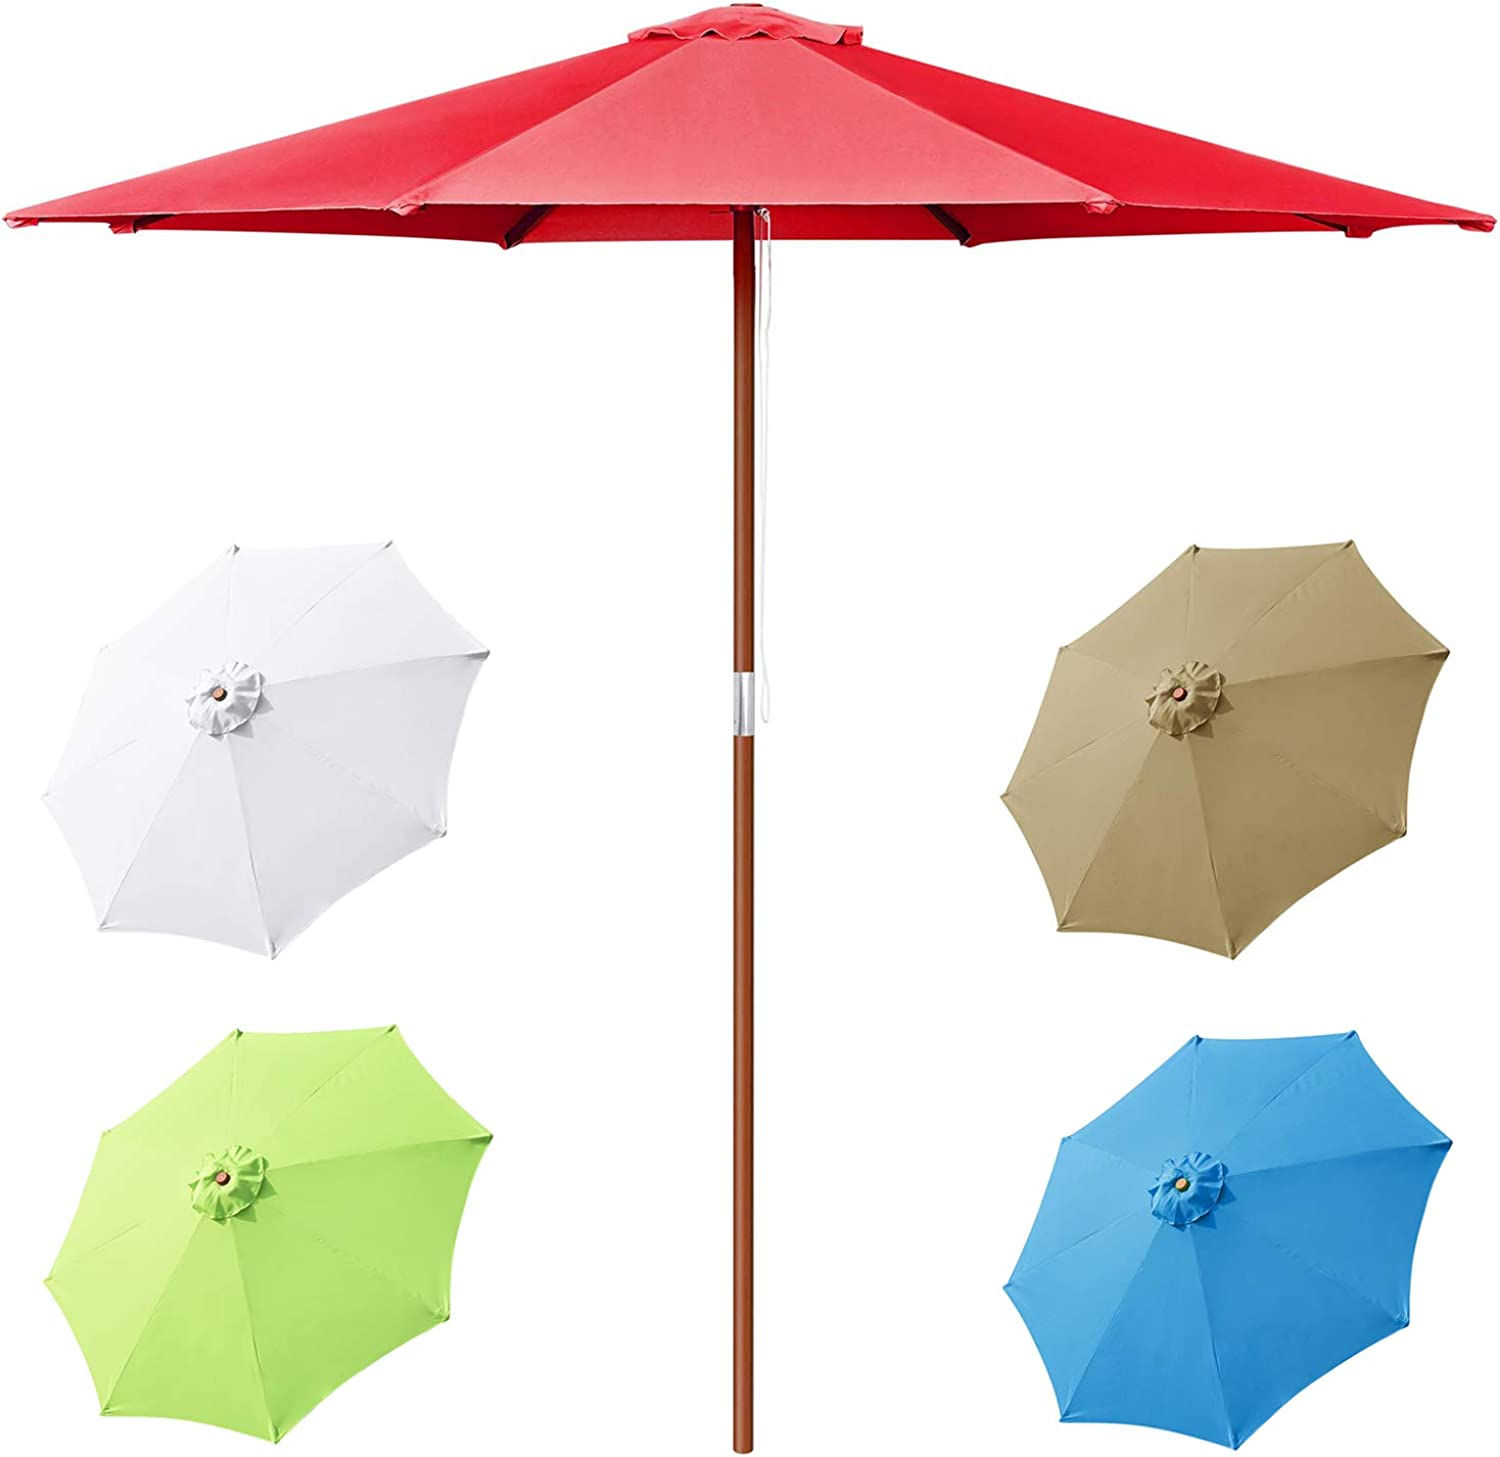 9ft Patio Clearance SALE! Limited time! Umbrella Outdoor Classic Umbrellas Ma Denver Mall Table Wood